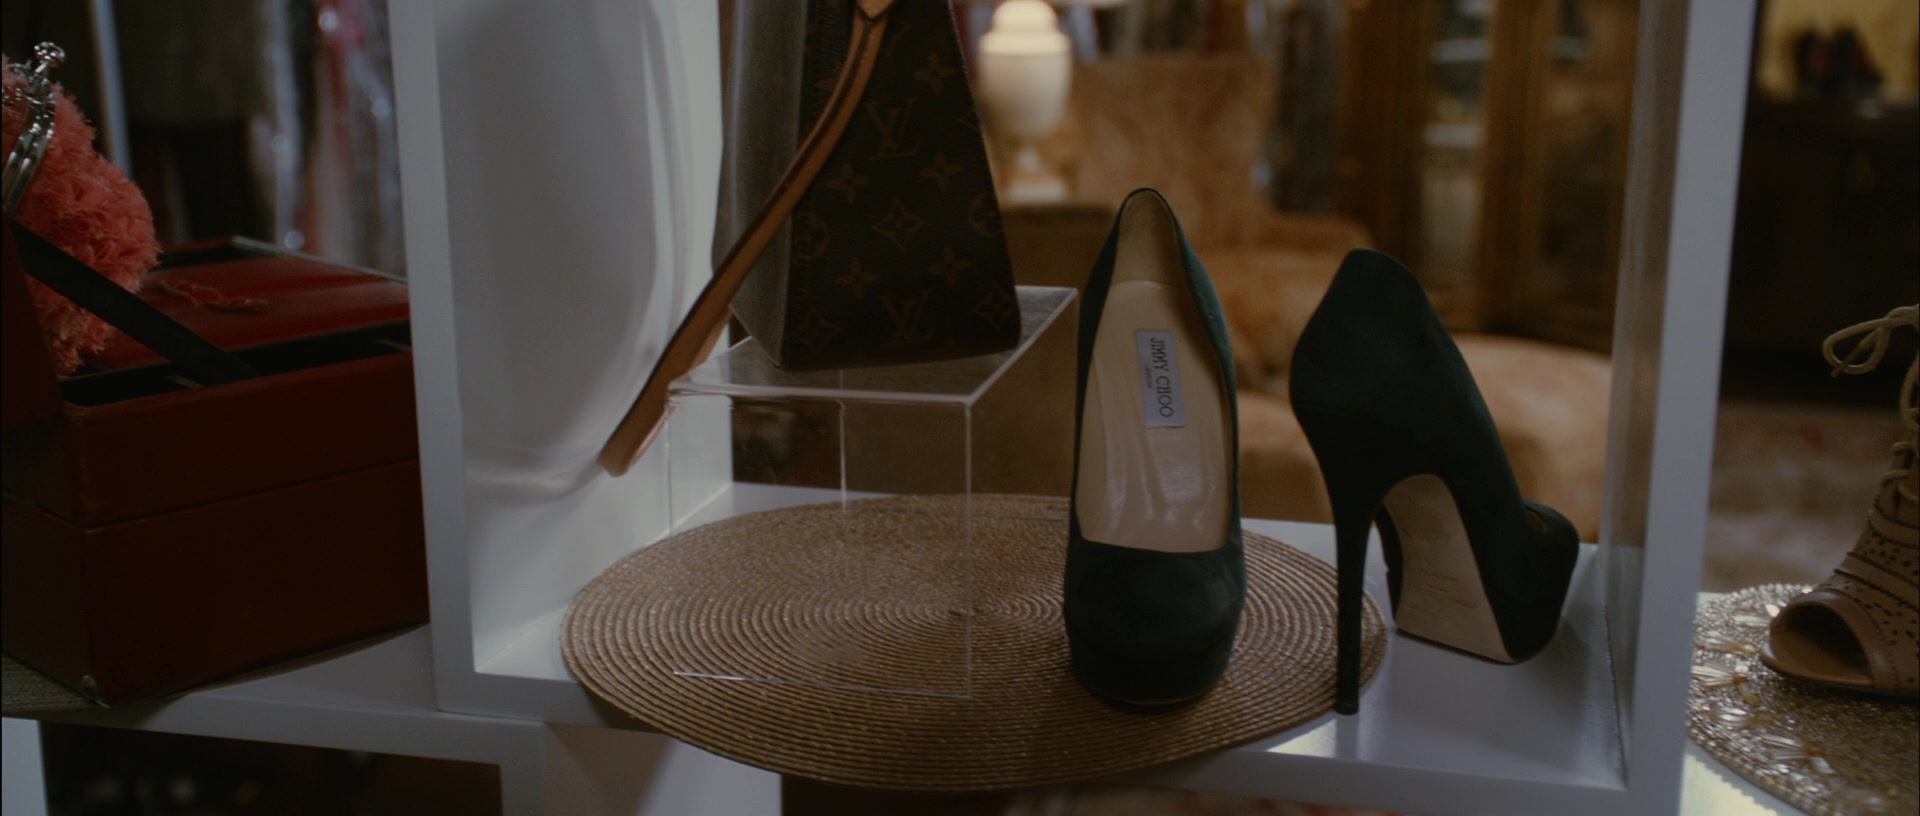 82f32387347 Louis Vuitton Handbag and Jimmy Choo High Heel Shoes in Temptation   Confessions of a Marriage Counselor (2013)